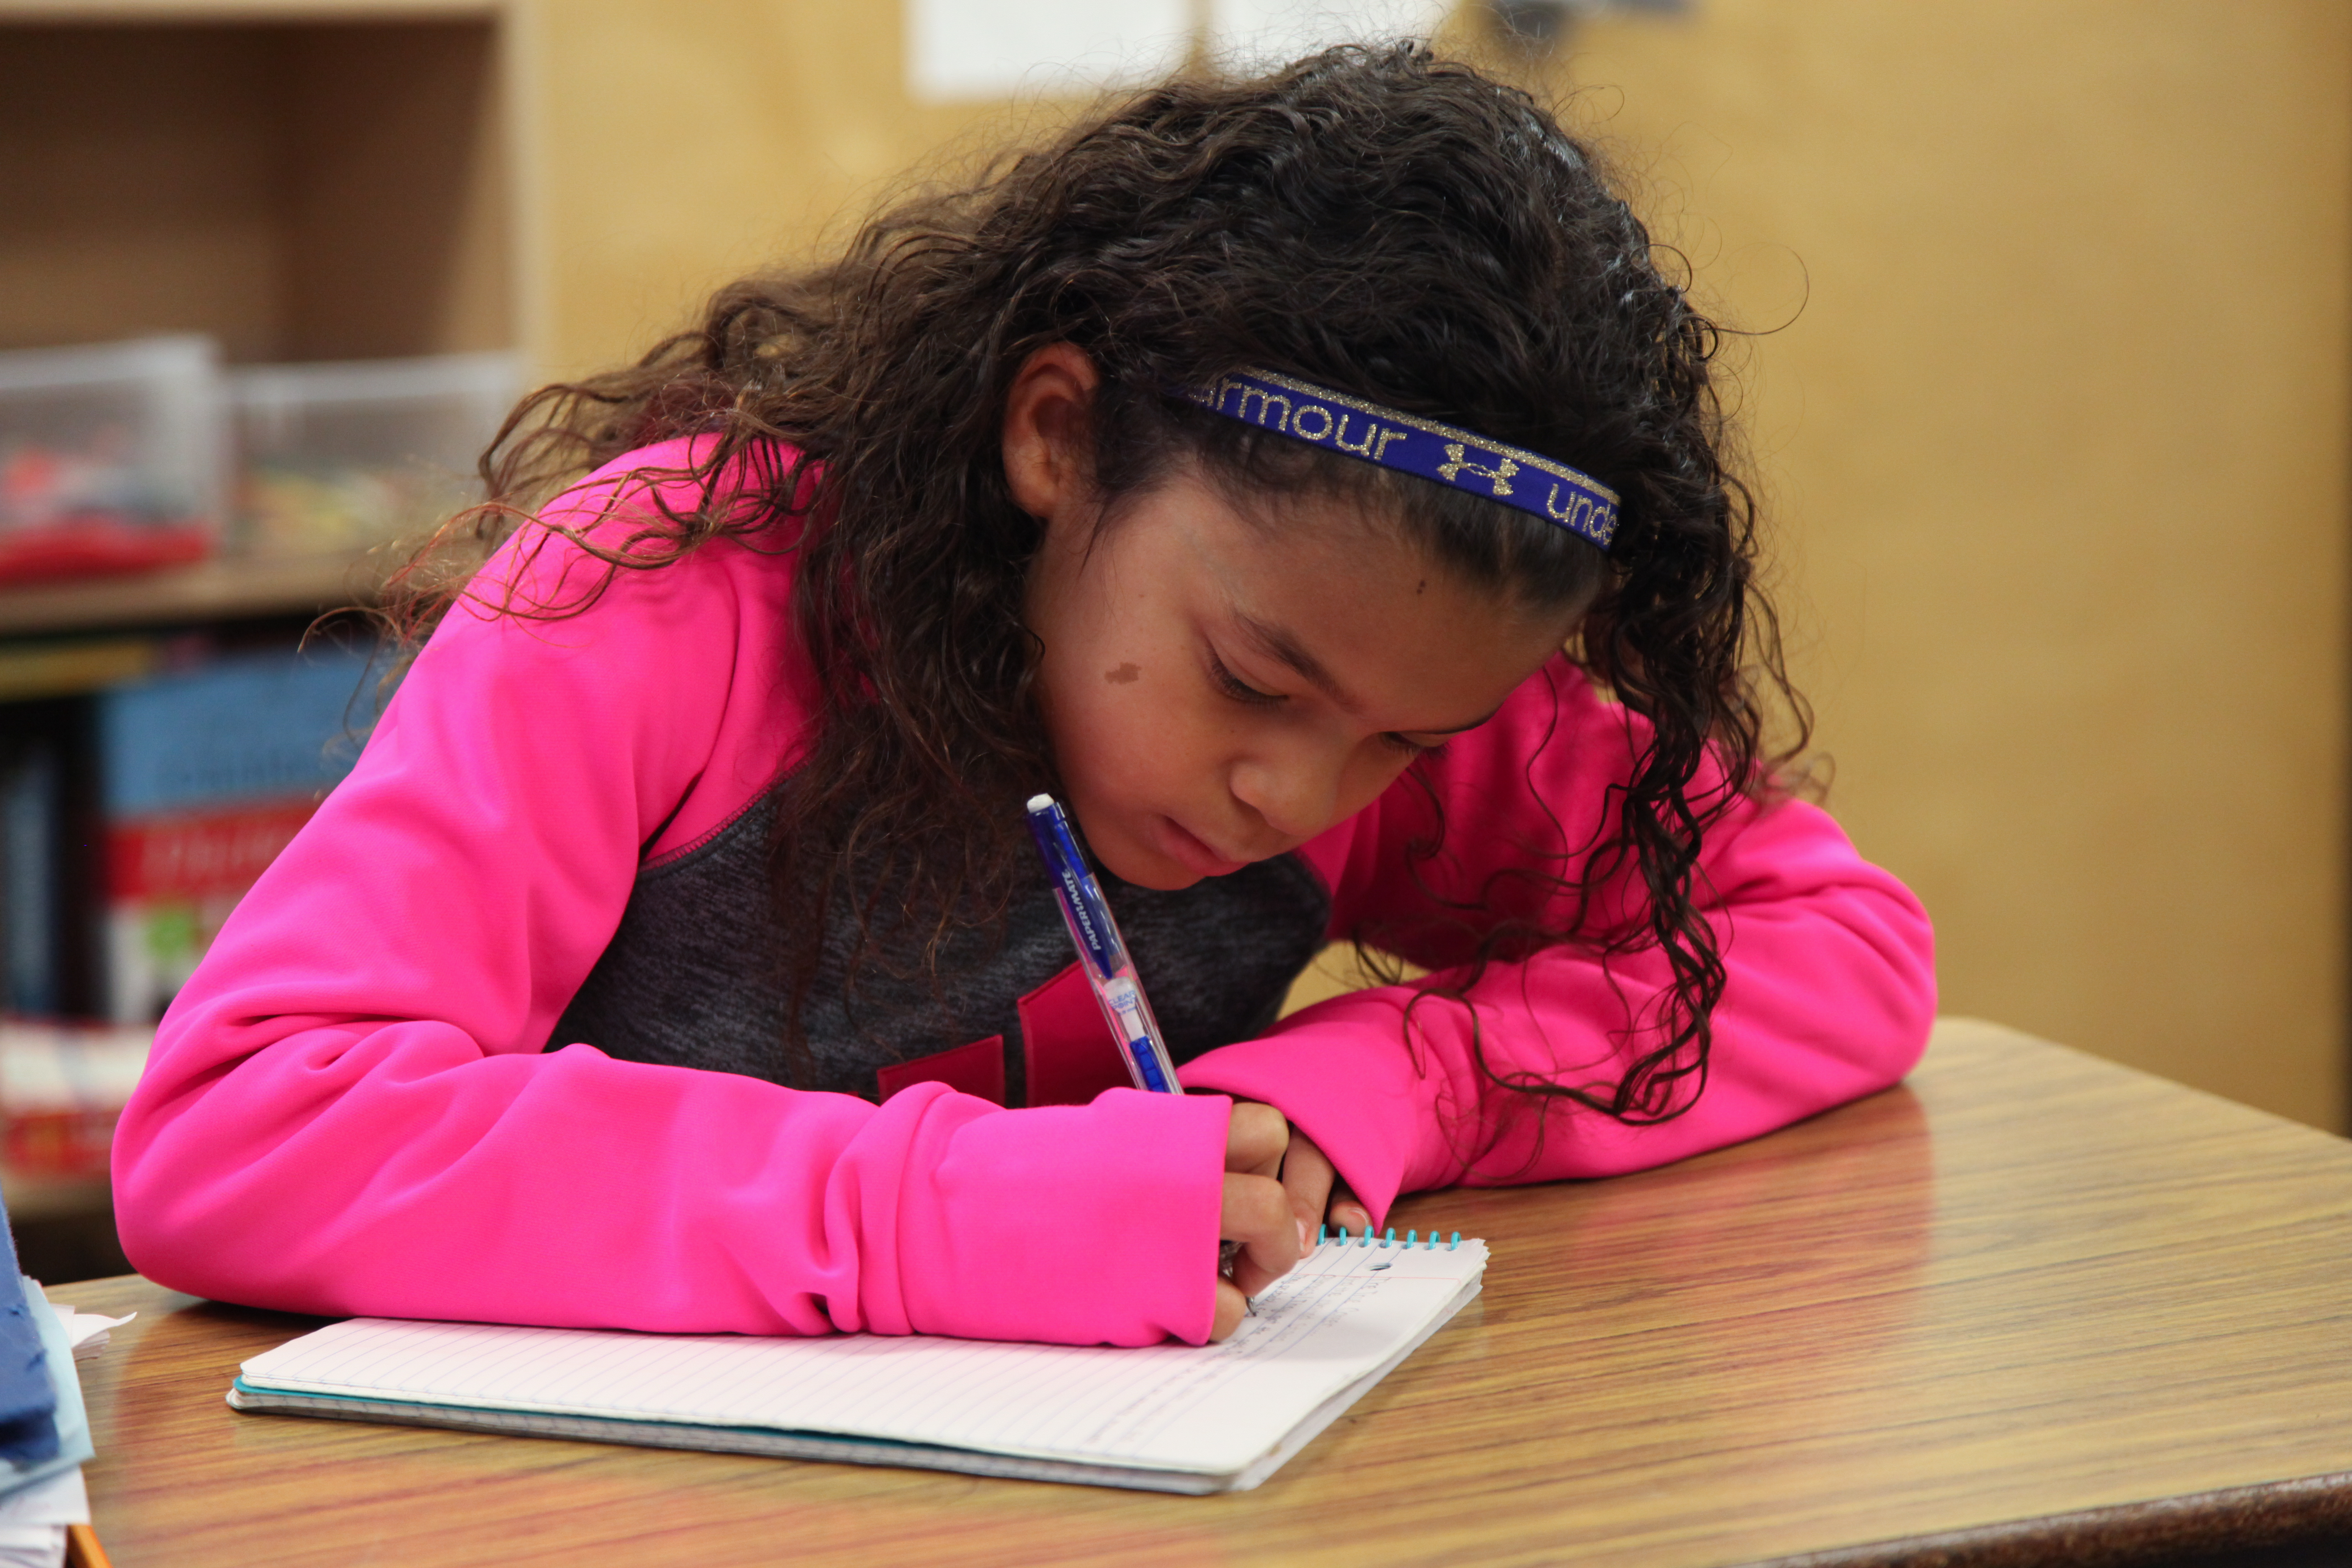 NaNoWriMo Empowers Young Writers